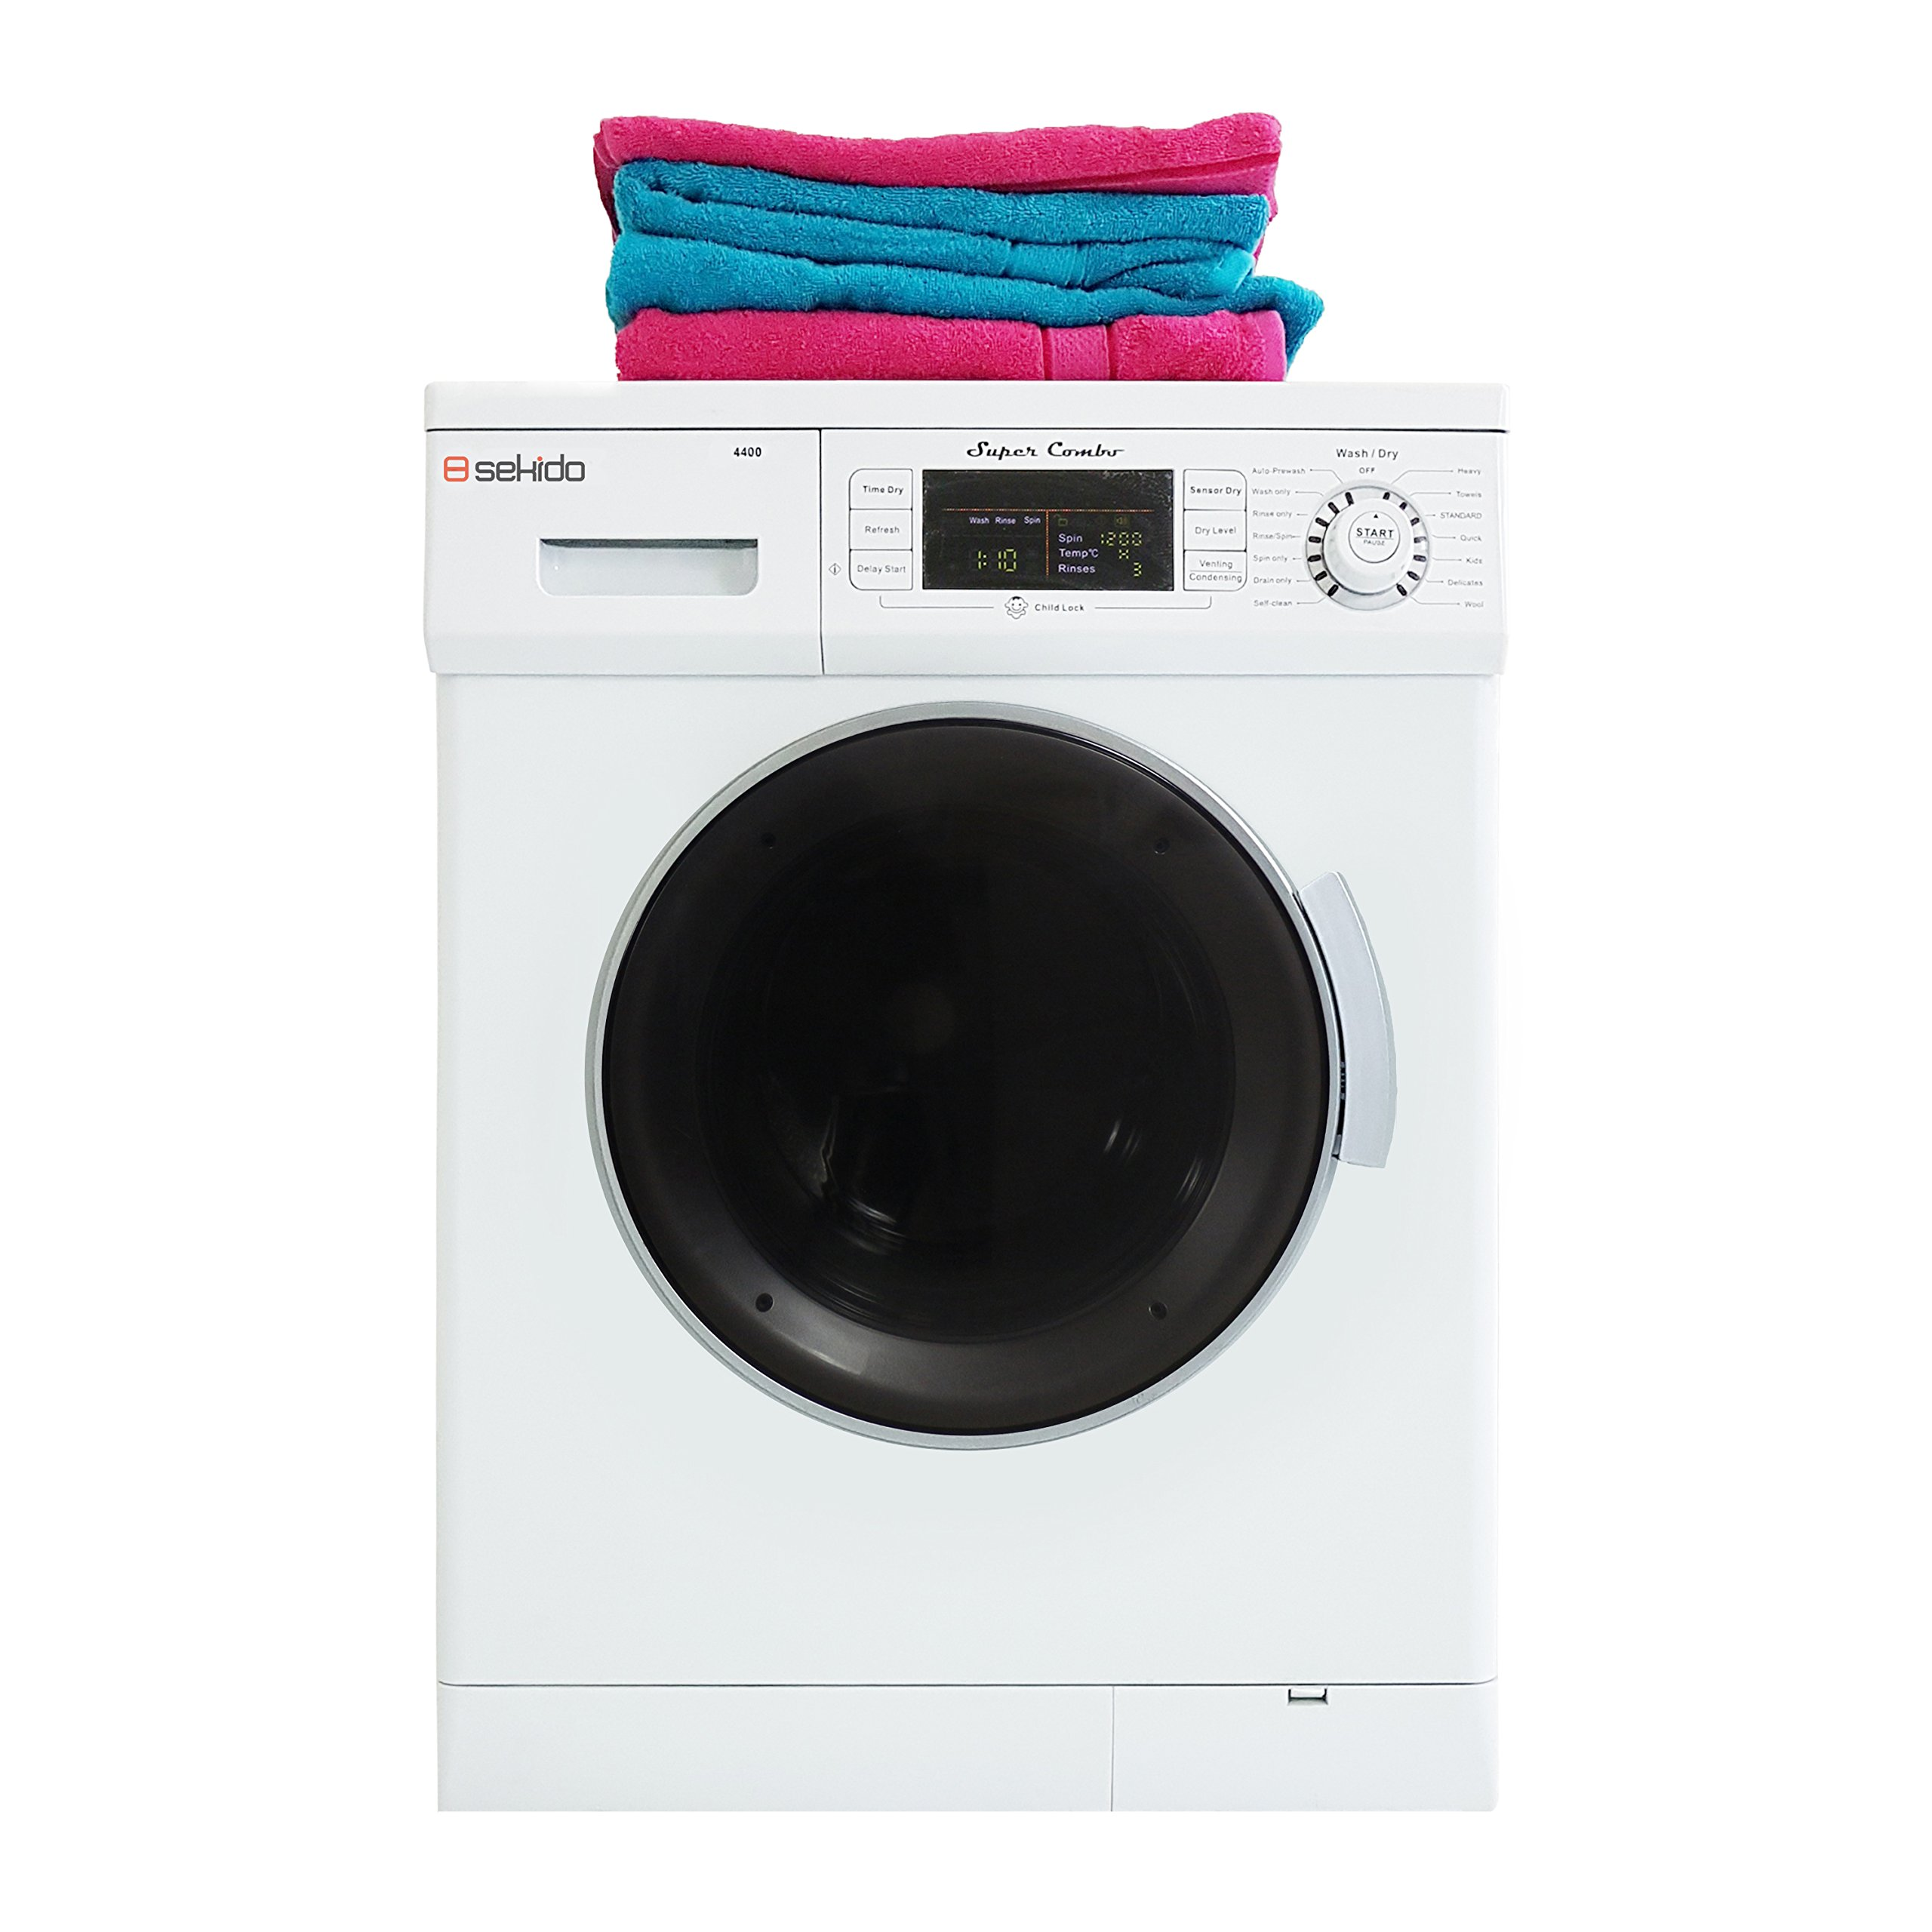 All in one Front Load 1.6 Cu.ft. New Compact Combo Washer Dryer SK 4400 CV White with Optional Venting/ Condensing Drying with Automatic Water Level and Sensor Dry